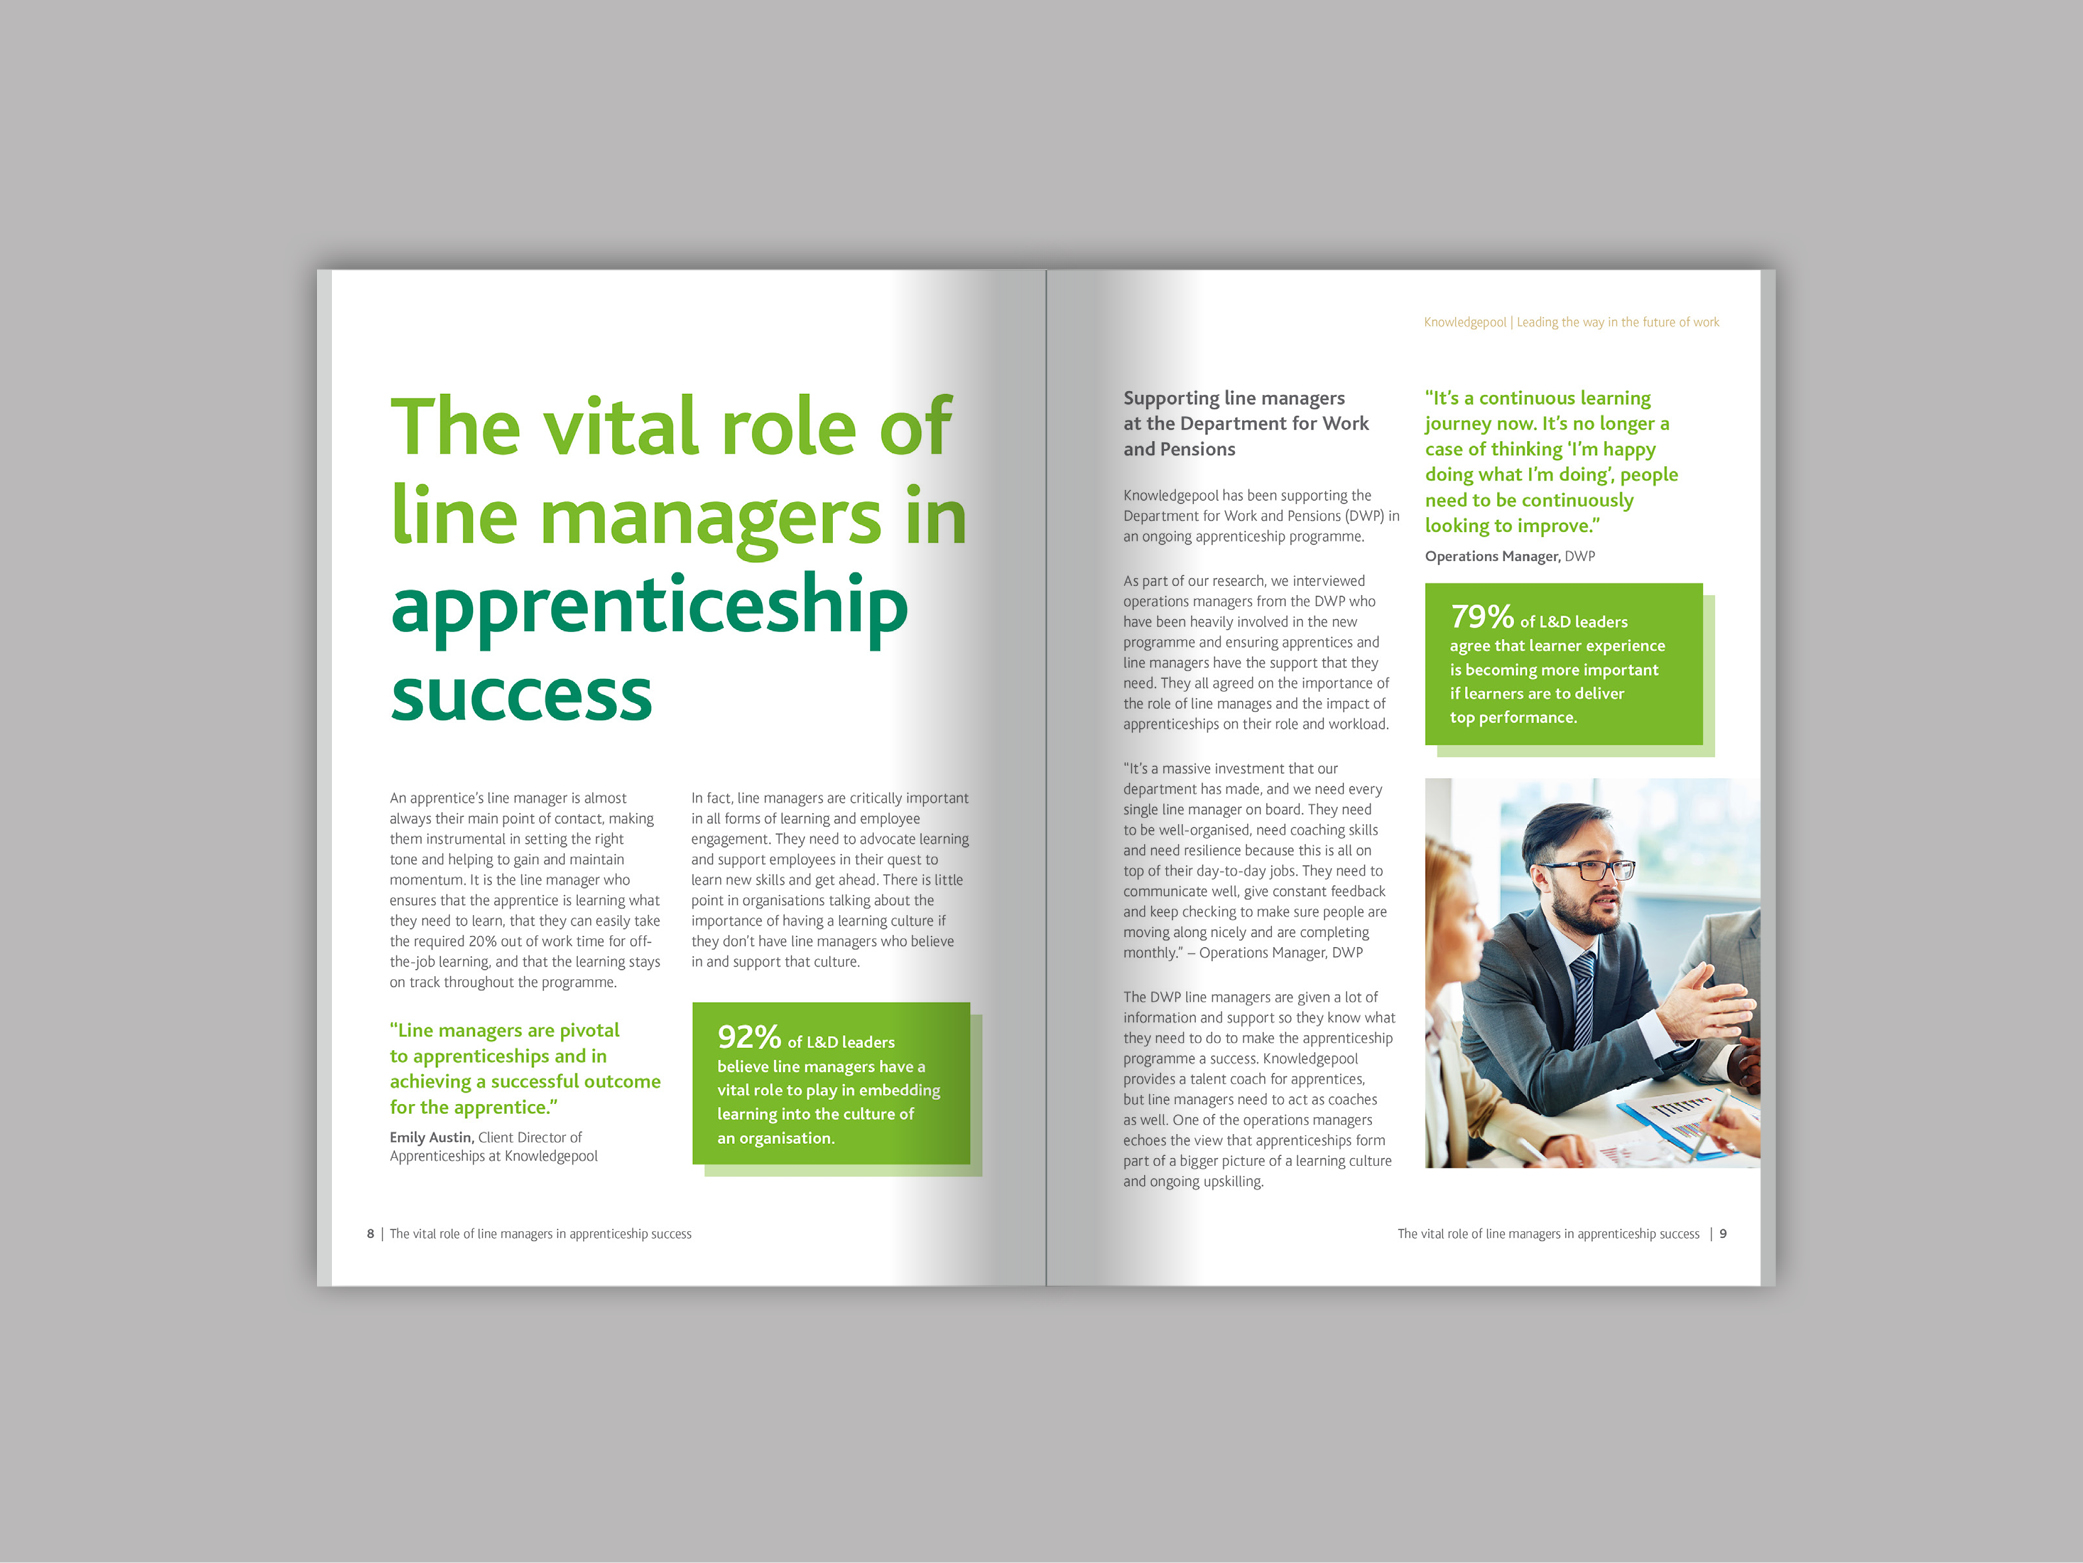 Transforming apprenticeship delivery: the vital role of line managers